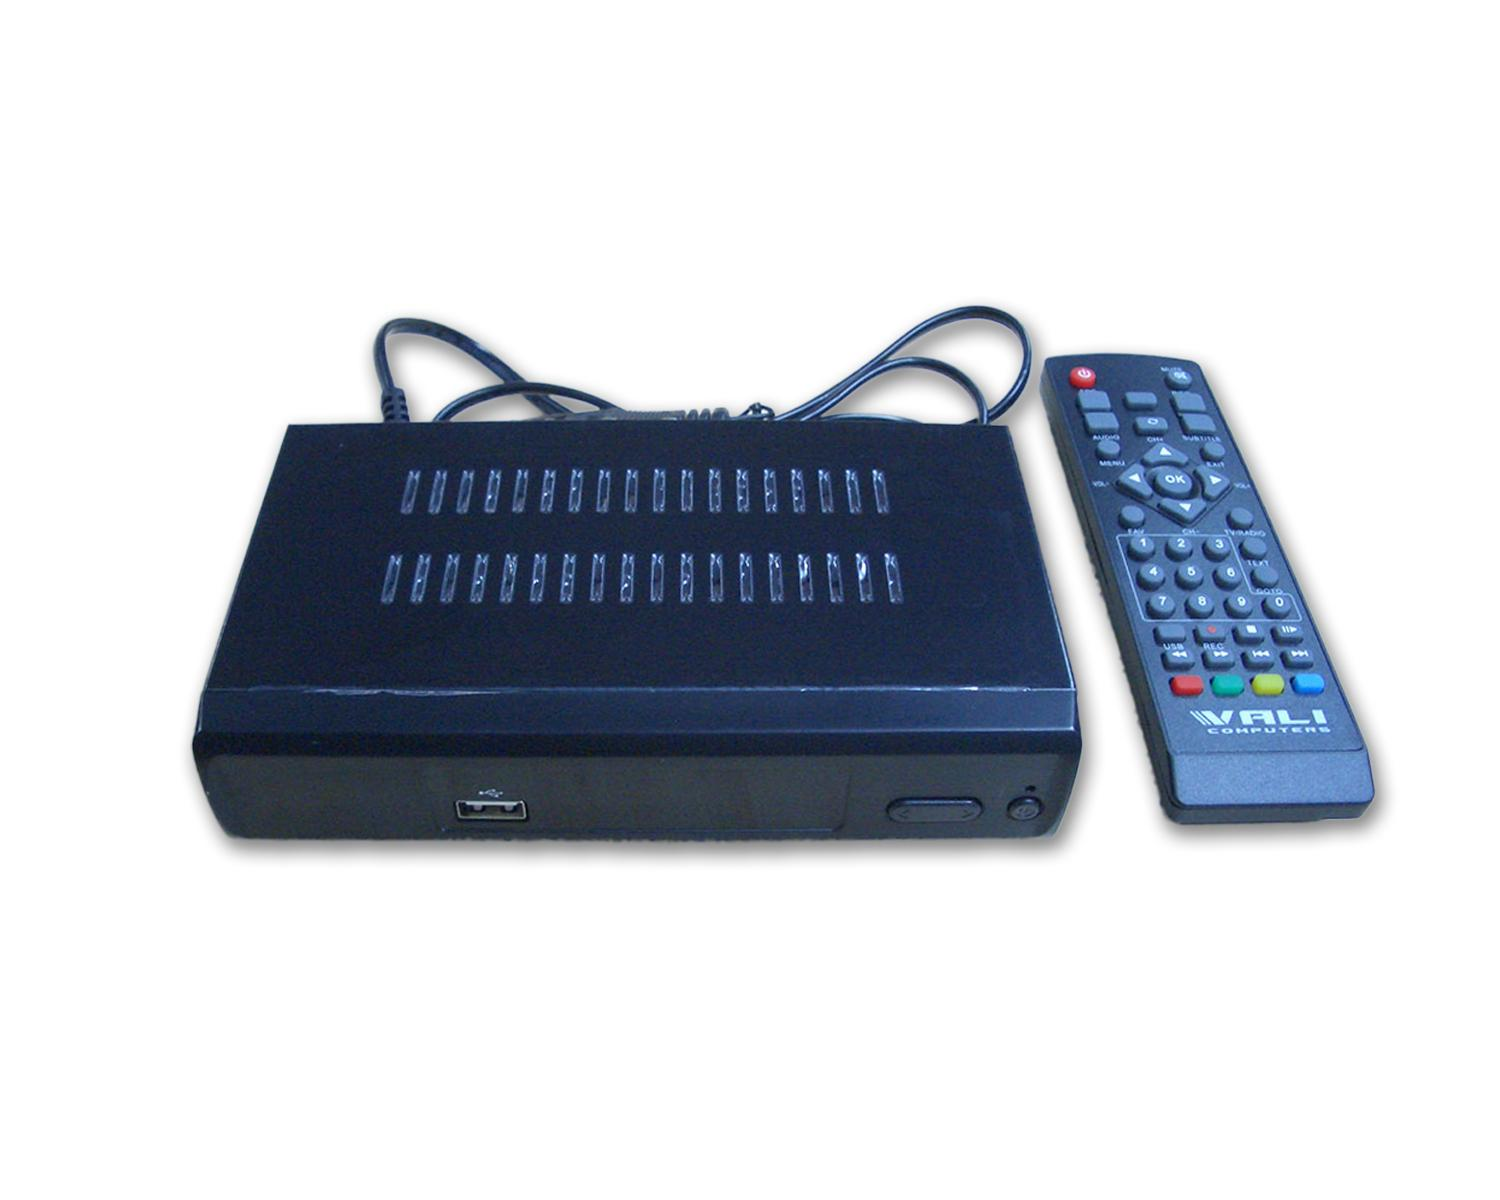 Цифров декодер NotOnlyTV ONEAUDIO DTR5110 SET TOP BOX (DVB-T2 декодер), HDMI, CVBS, YPbPr